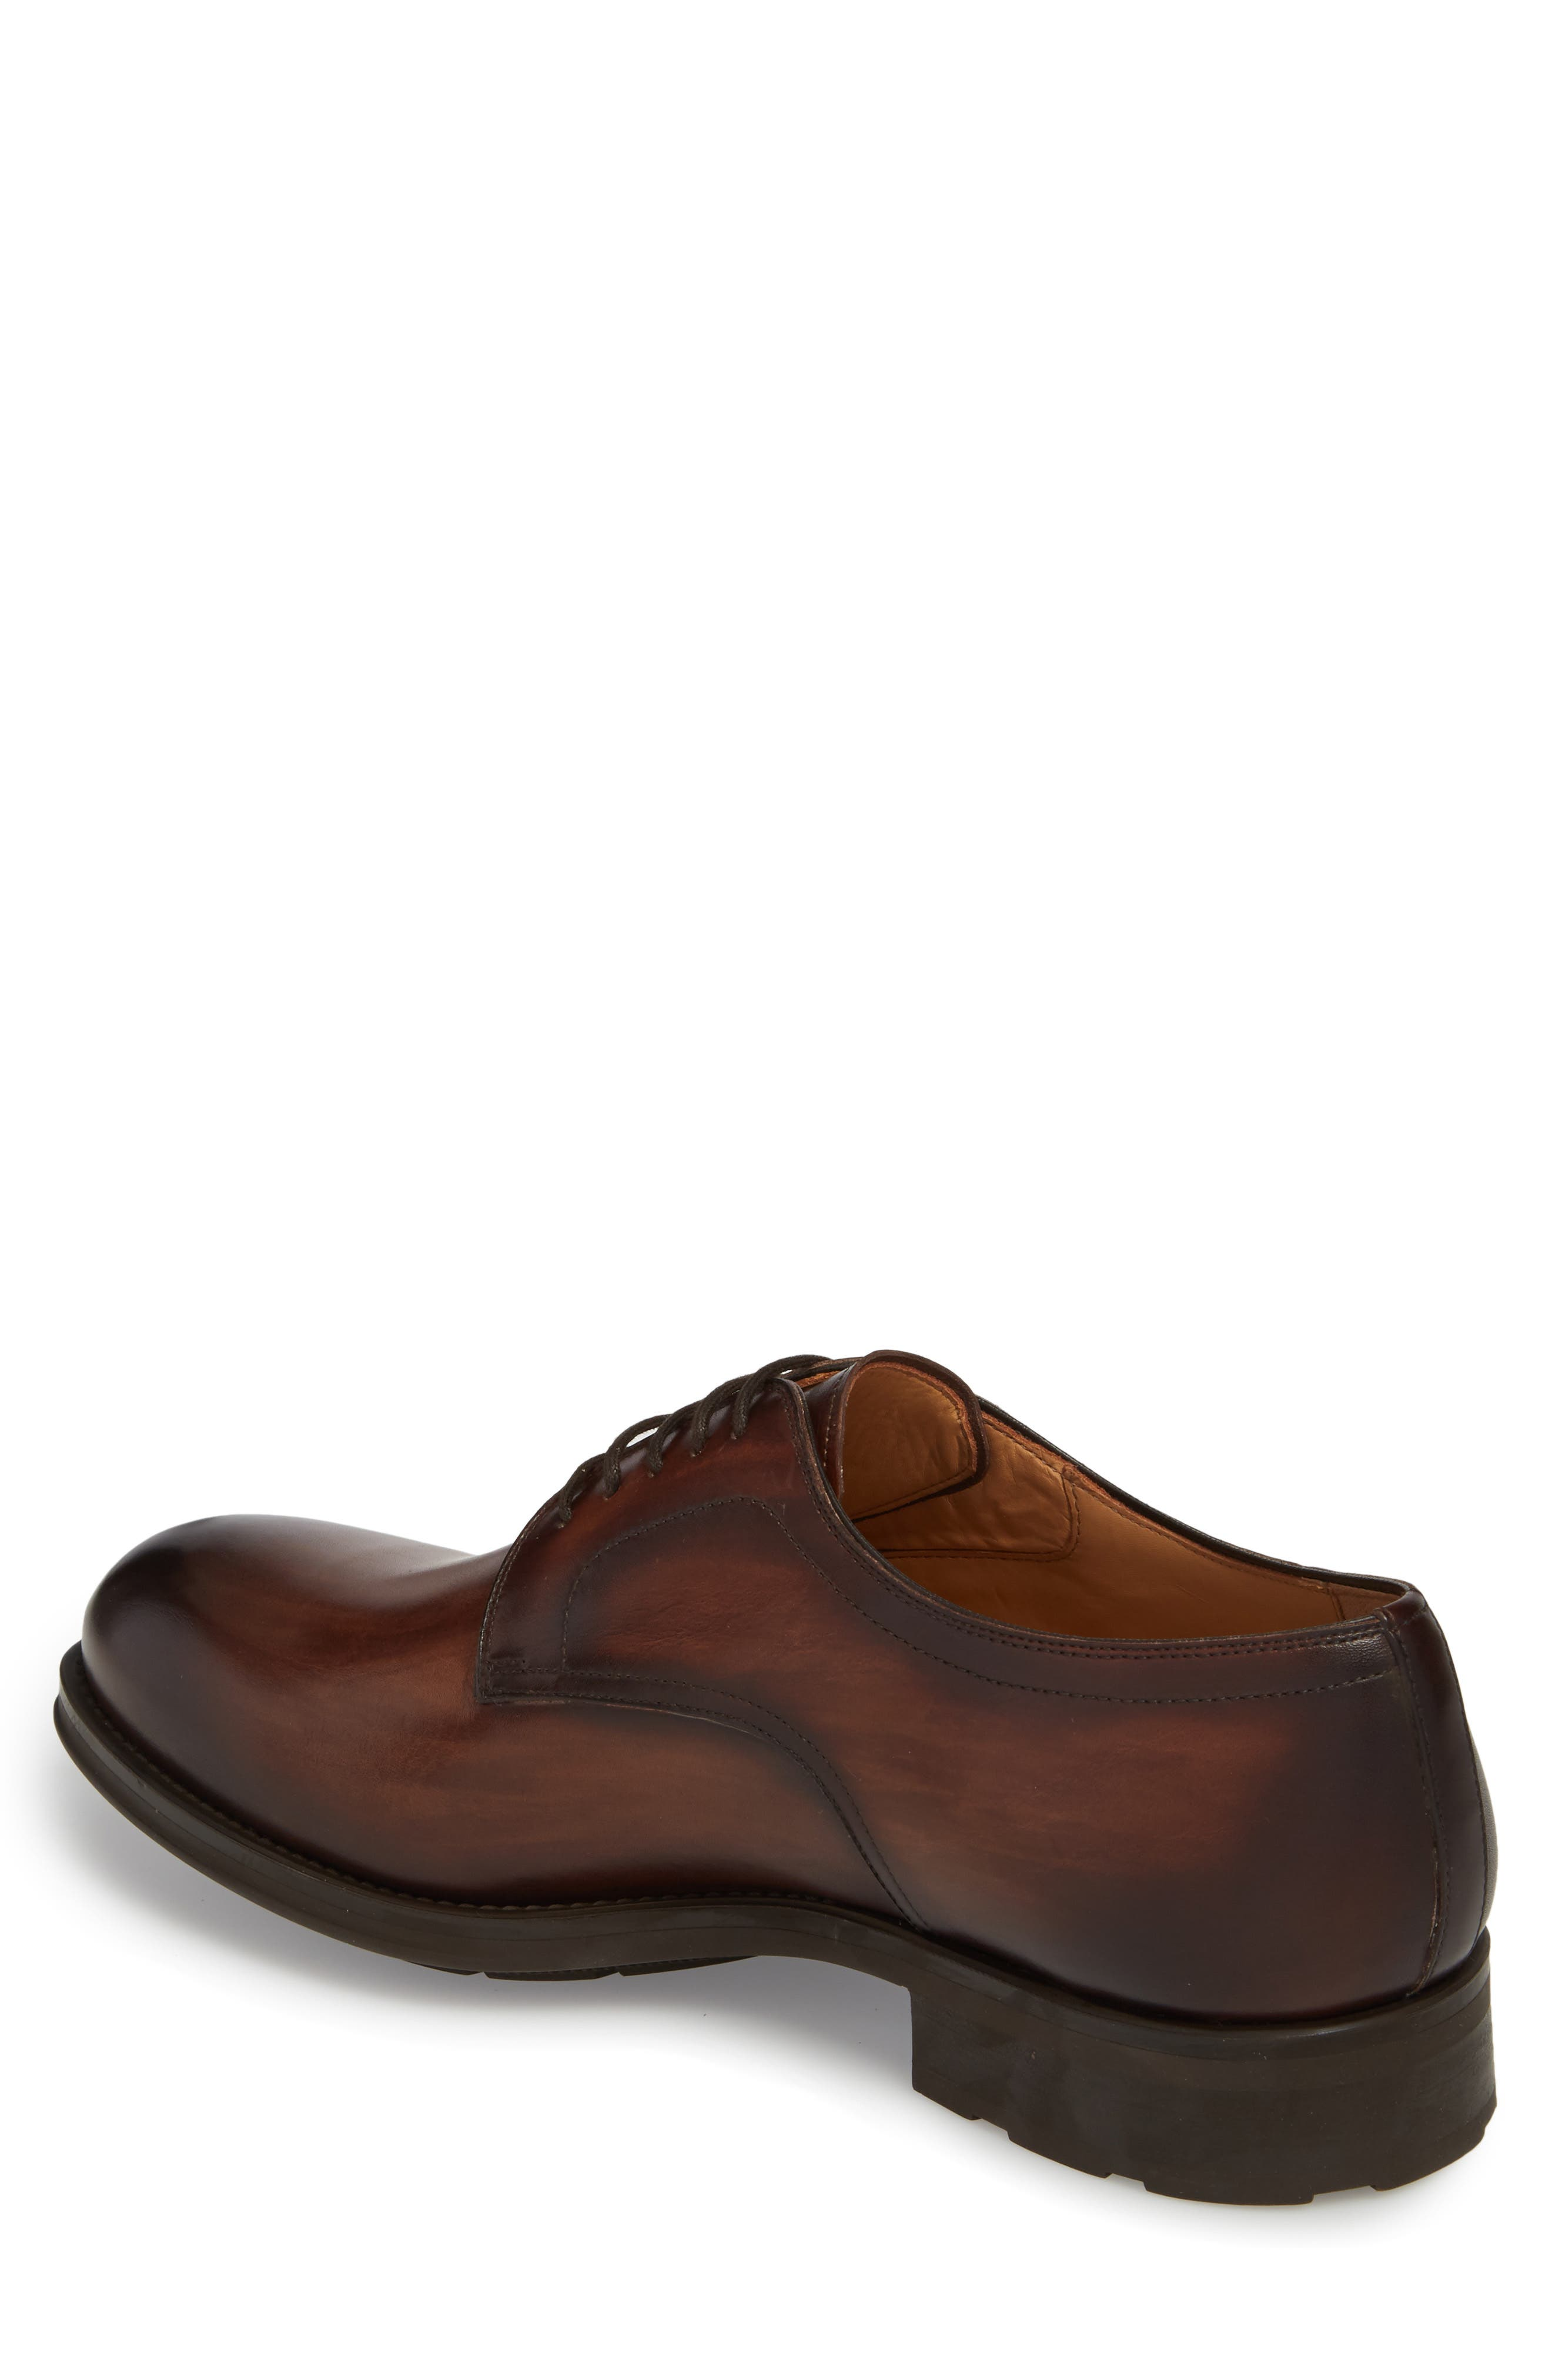 Solano Plain Toe Derby,                             Alternate thumbnail 2, color,                             Brown Leather